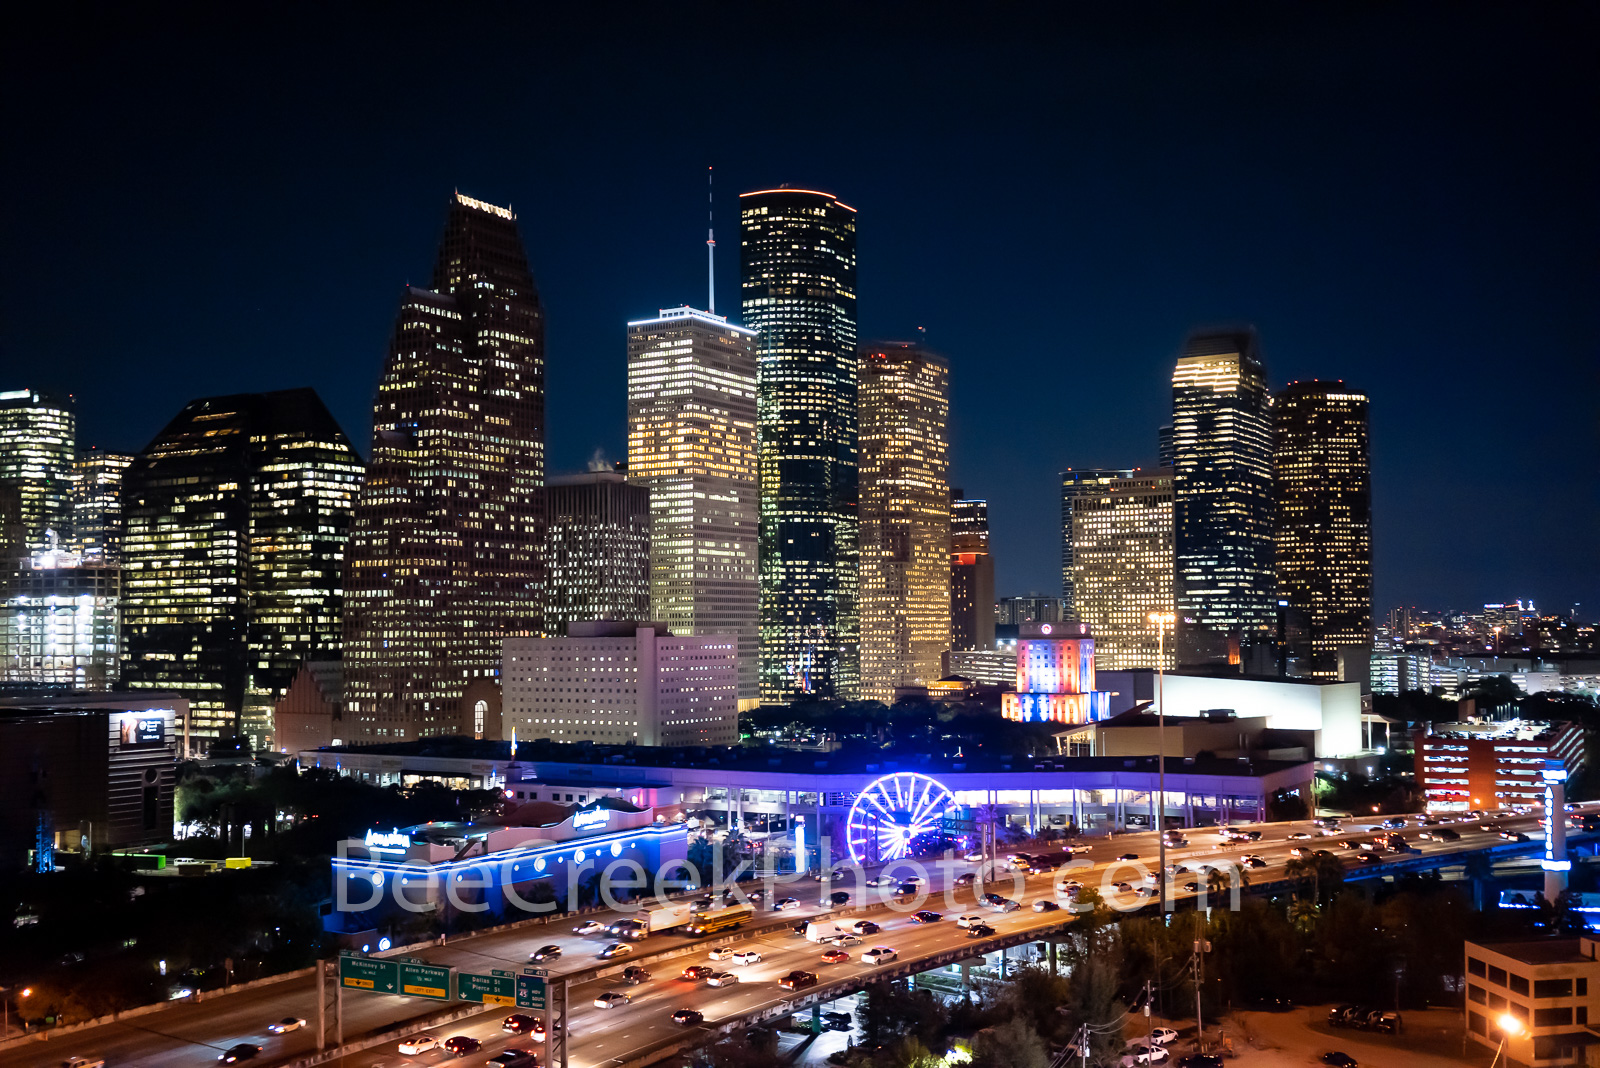 Houston skyline, aerial, night, IH45, cityscape, downtown, city, Aquarium, ferris wheel, city hall, rainbow, colors, colorful, modern, high rise, southern US, Texas, culture, parks, business,, photo